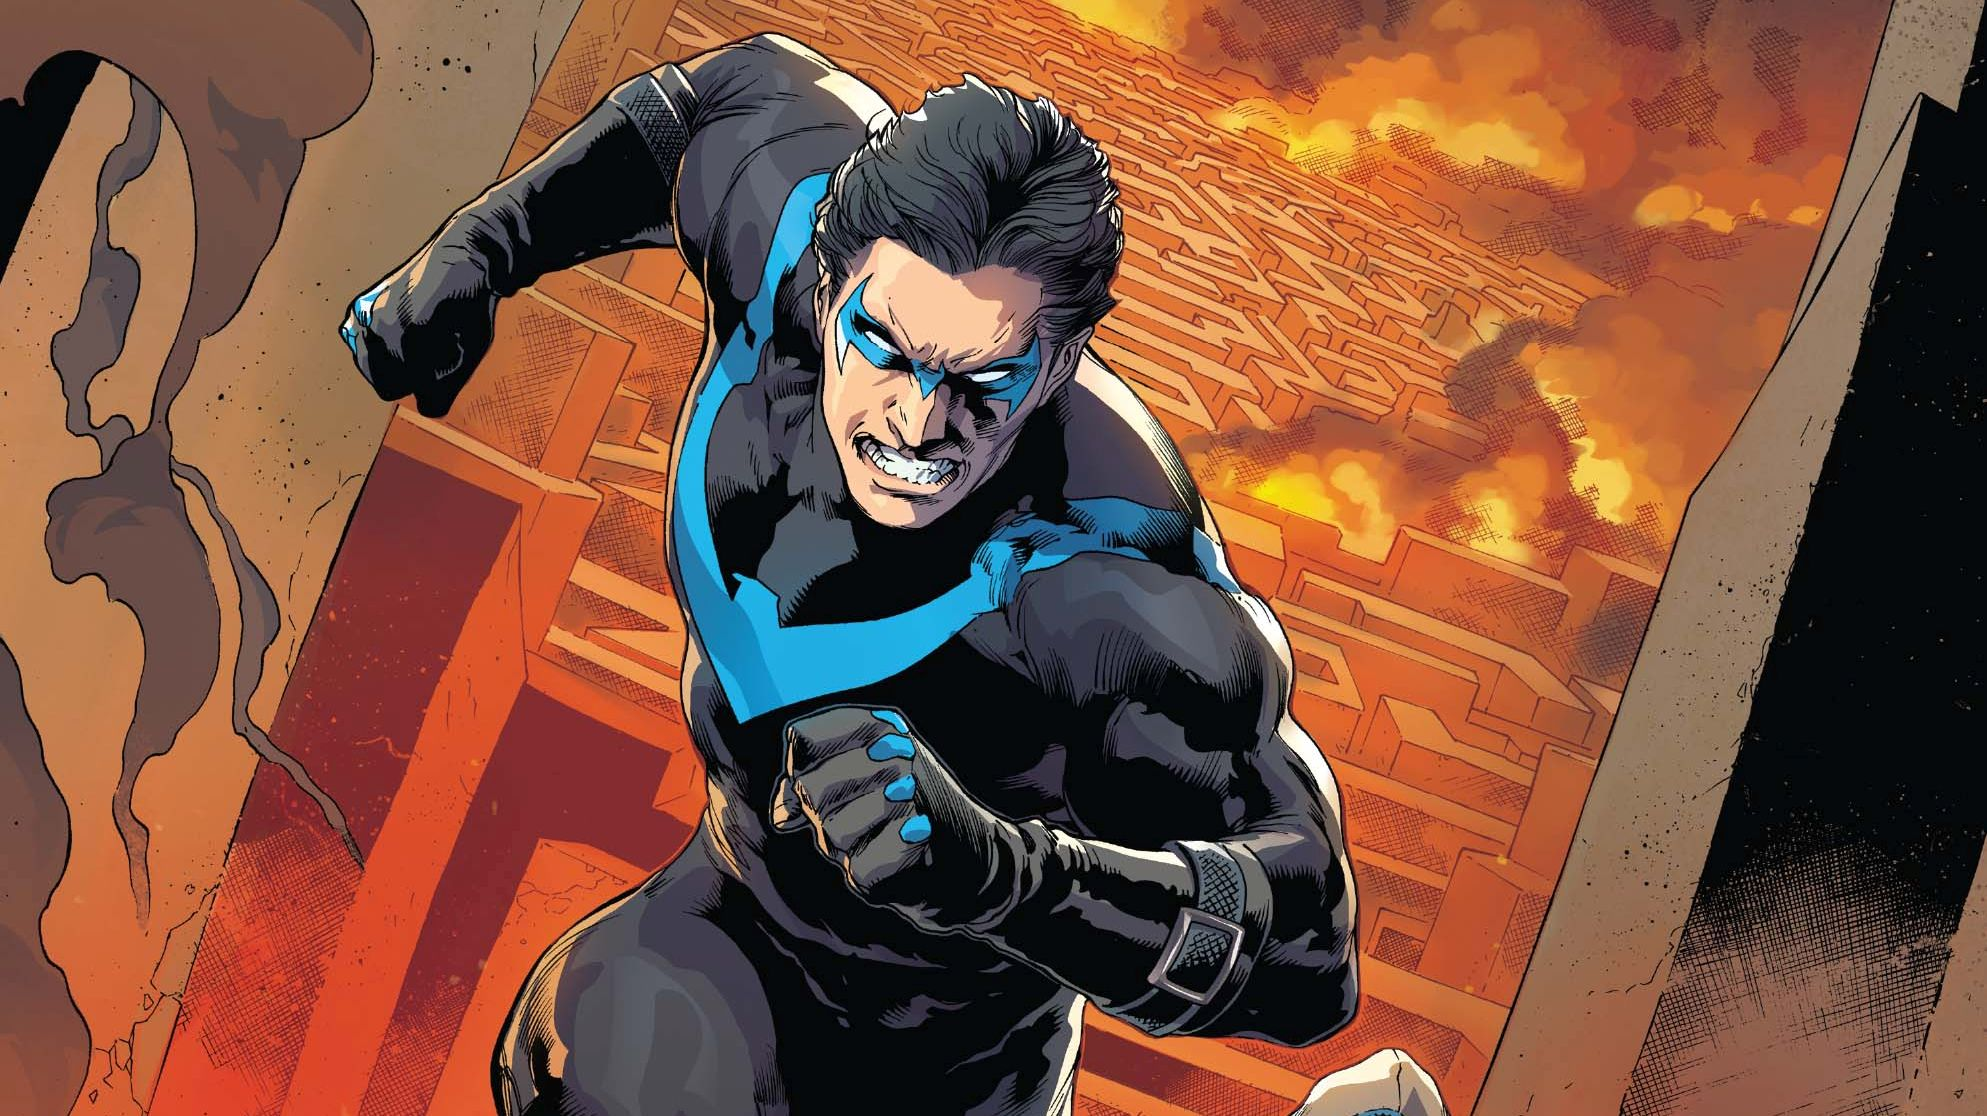 Nightwing Wallpaper and Background Image | 1440x1079 | ID